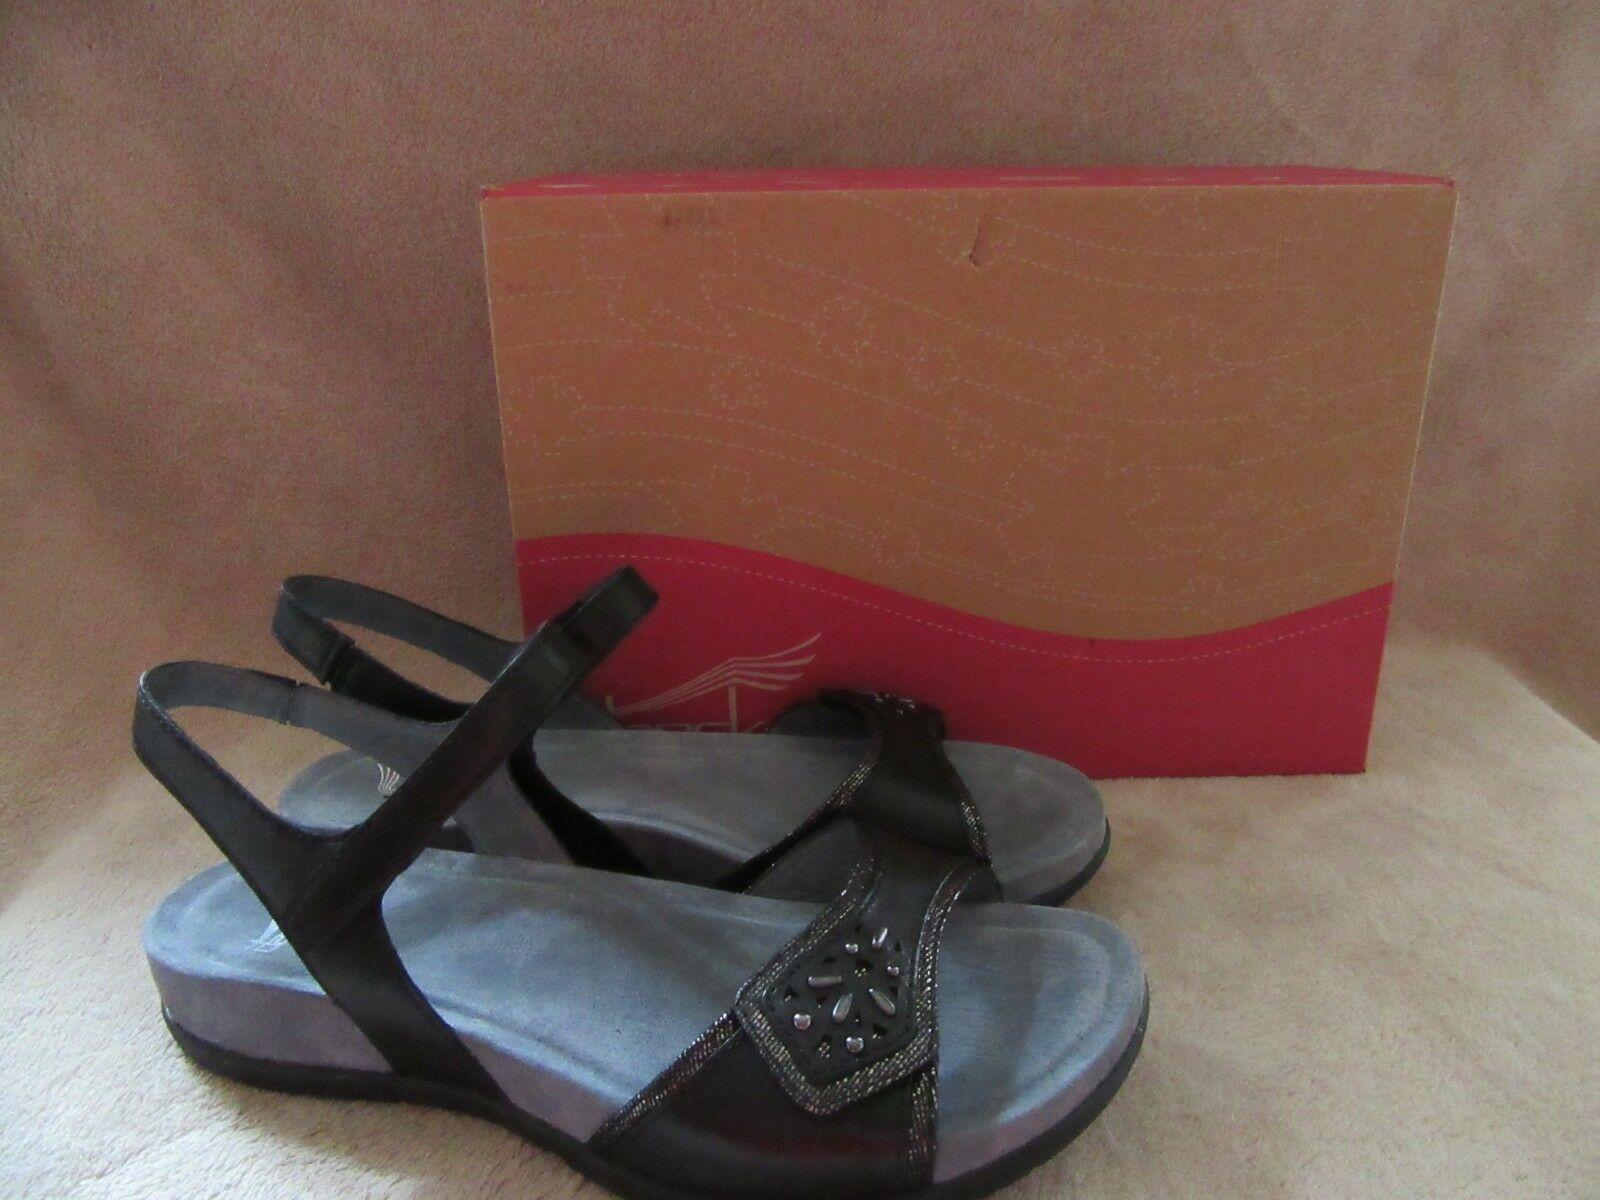 DANSKO Blythe Full Grain Black Leather Sandals Shoes US 8.5 - 9 M NWB